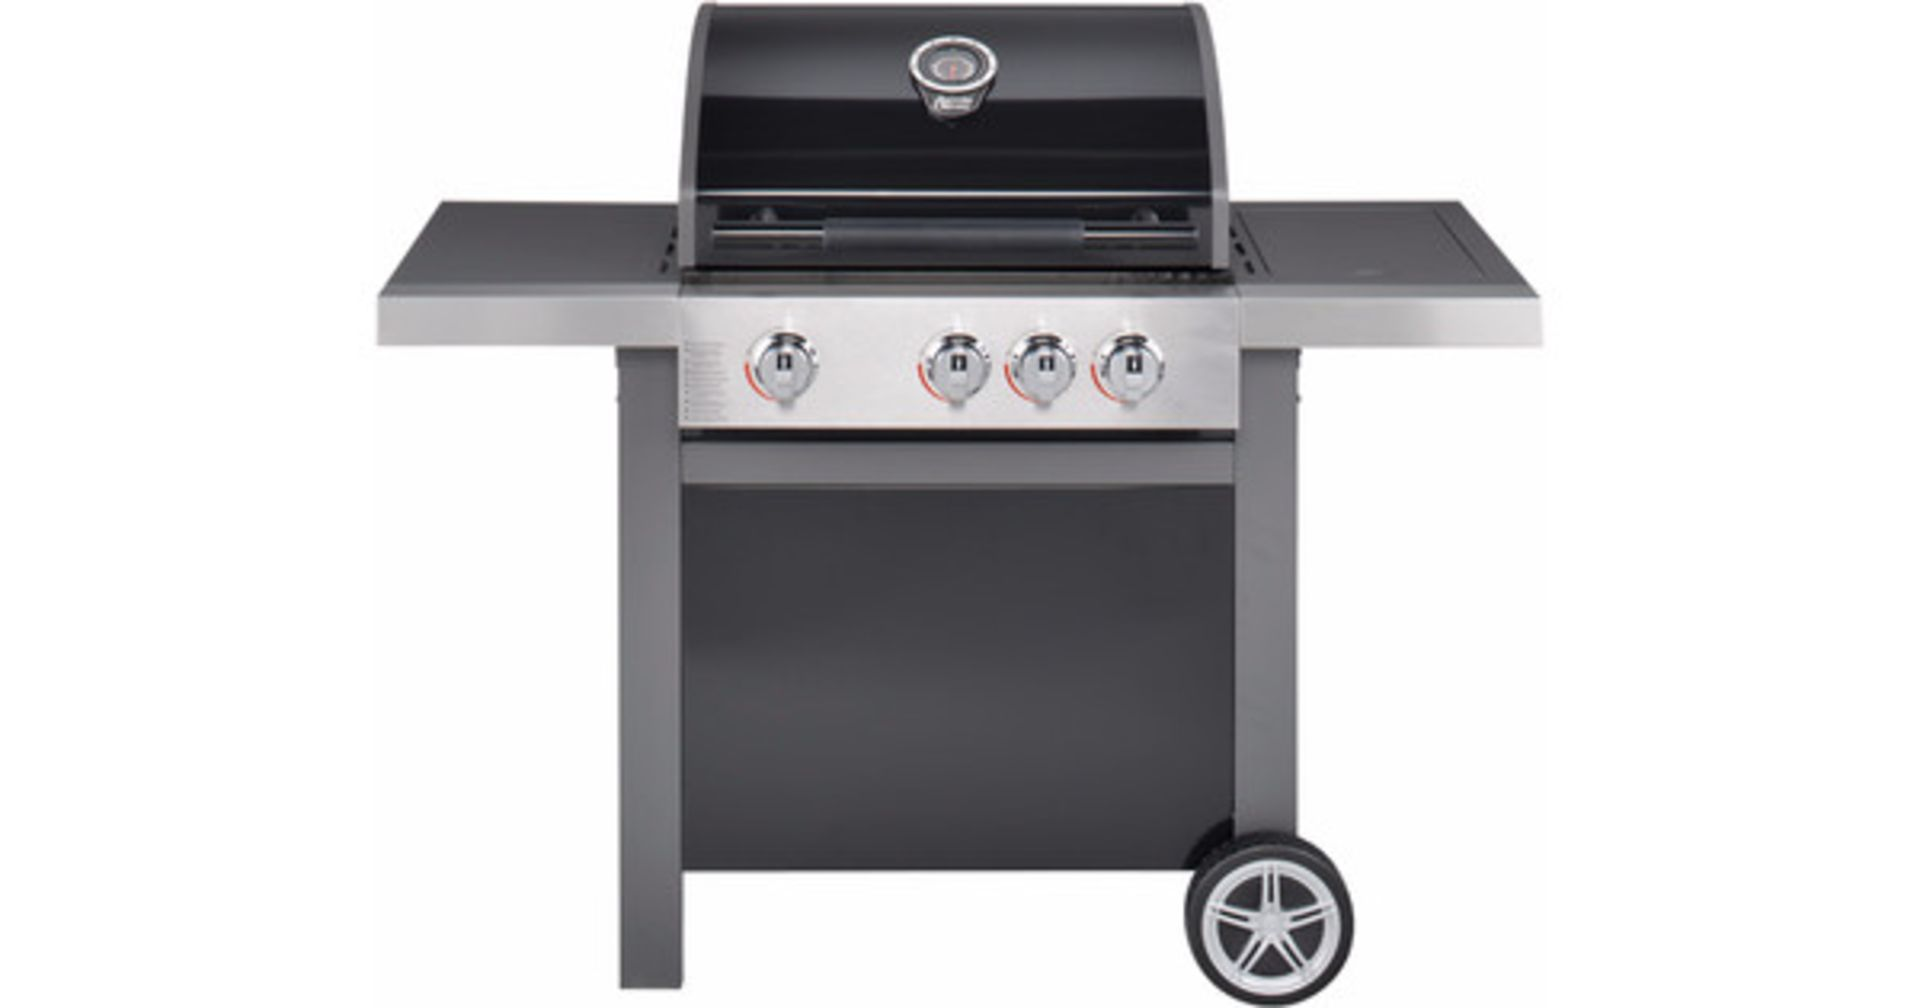 Lot 15024 - + VAT Brand New Jamie Oliver Home 3s Barbecue - Three Burners With Cast Iron Grills - Includes Side